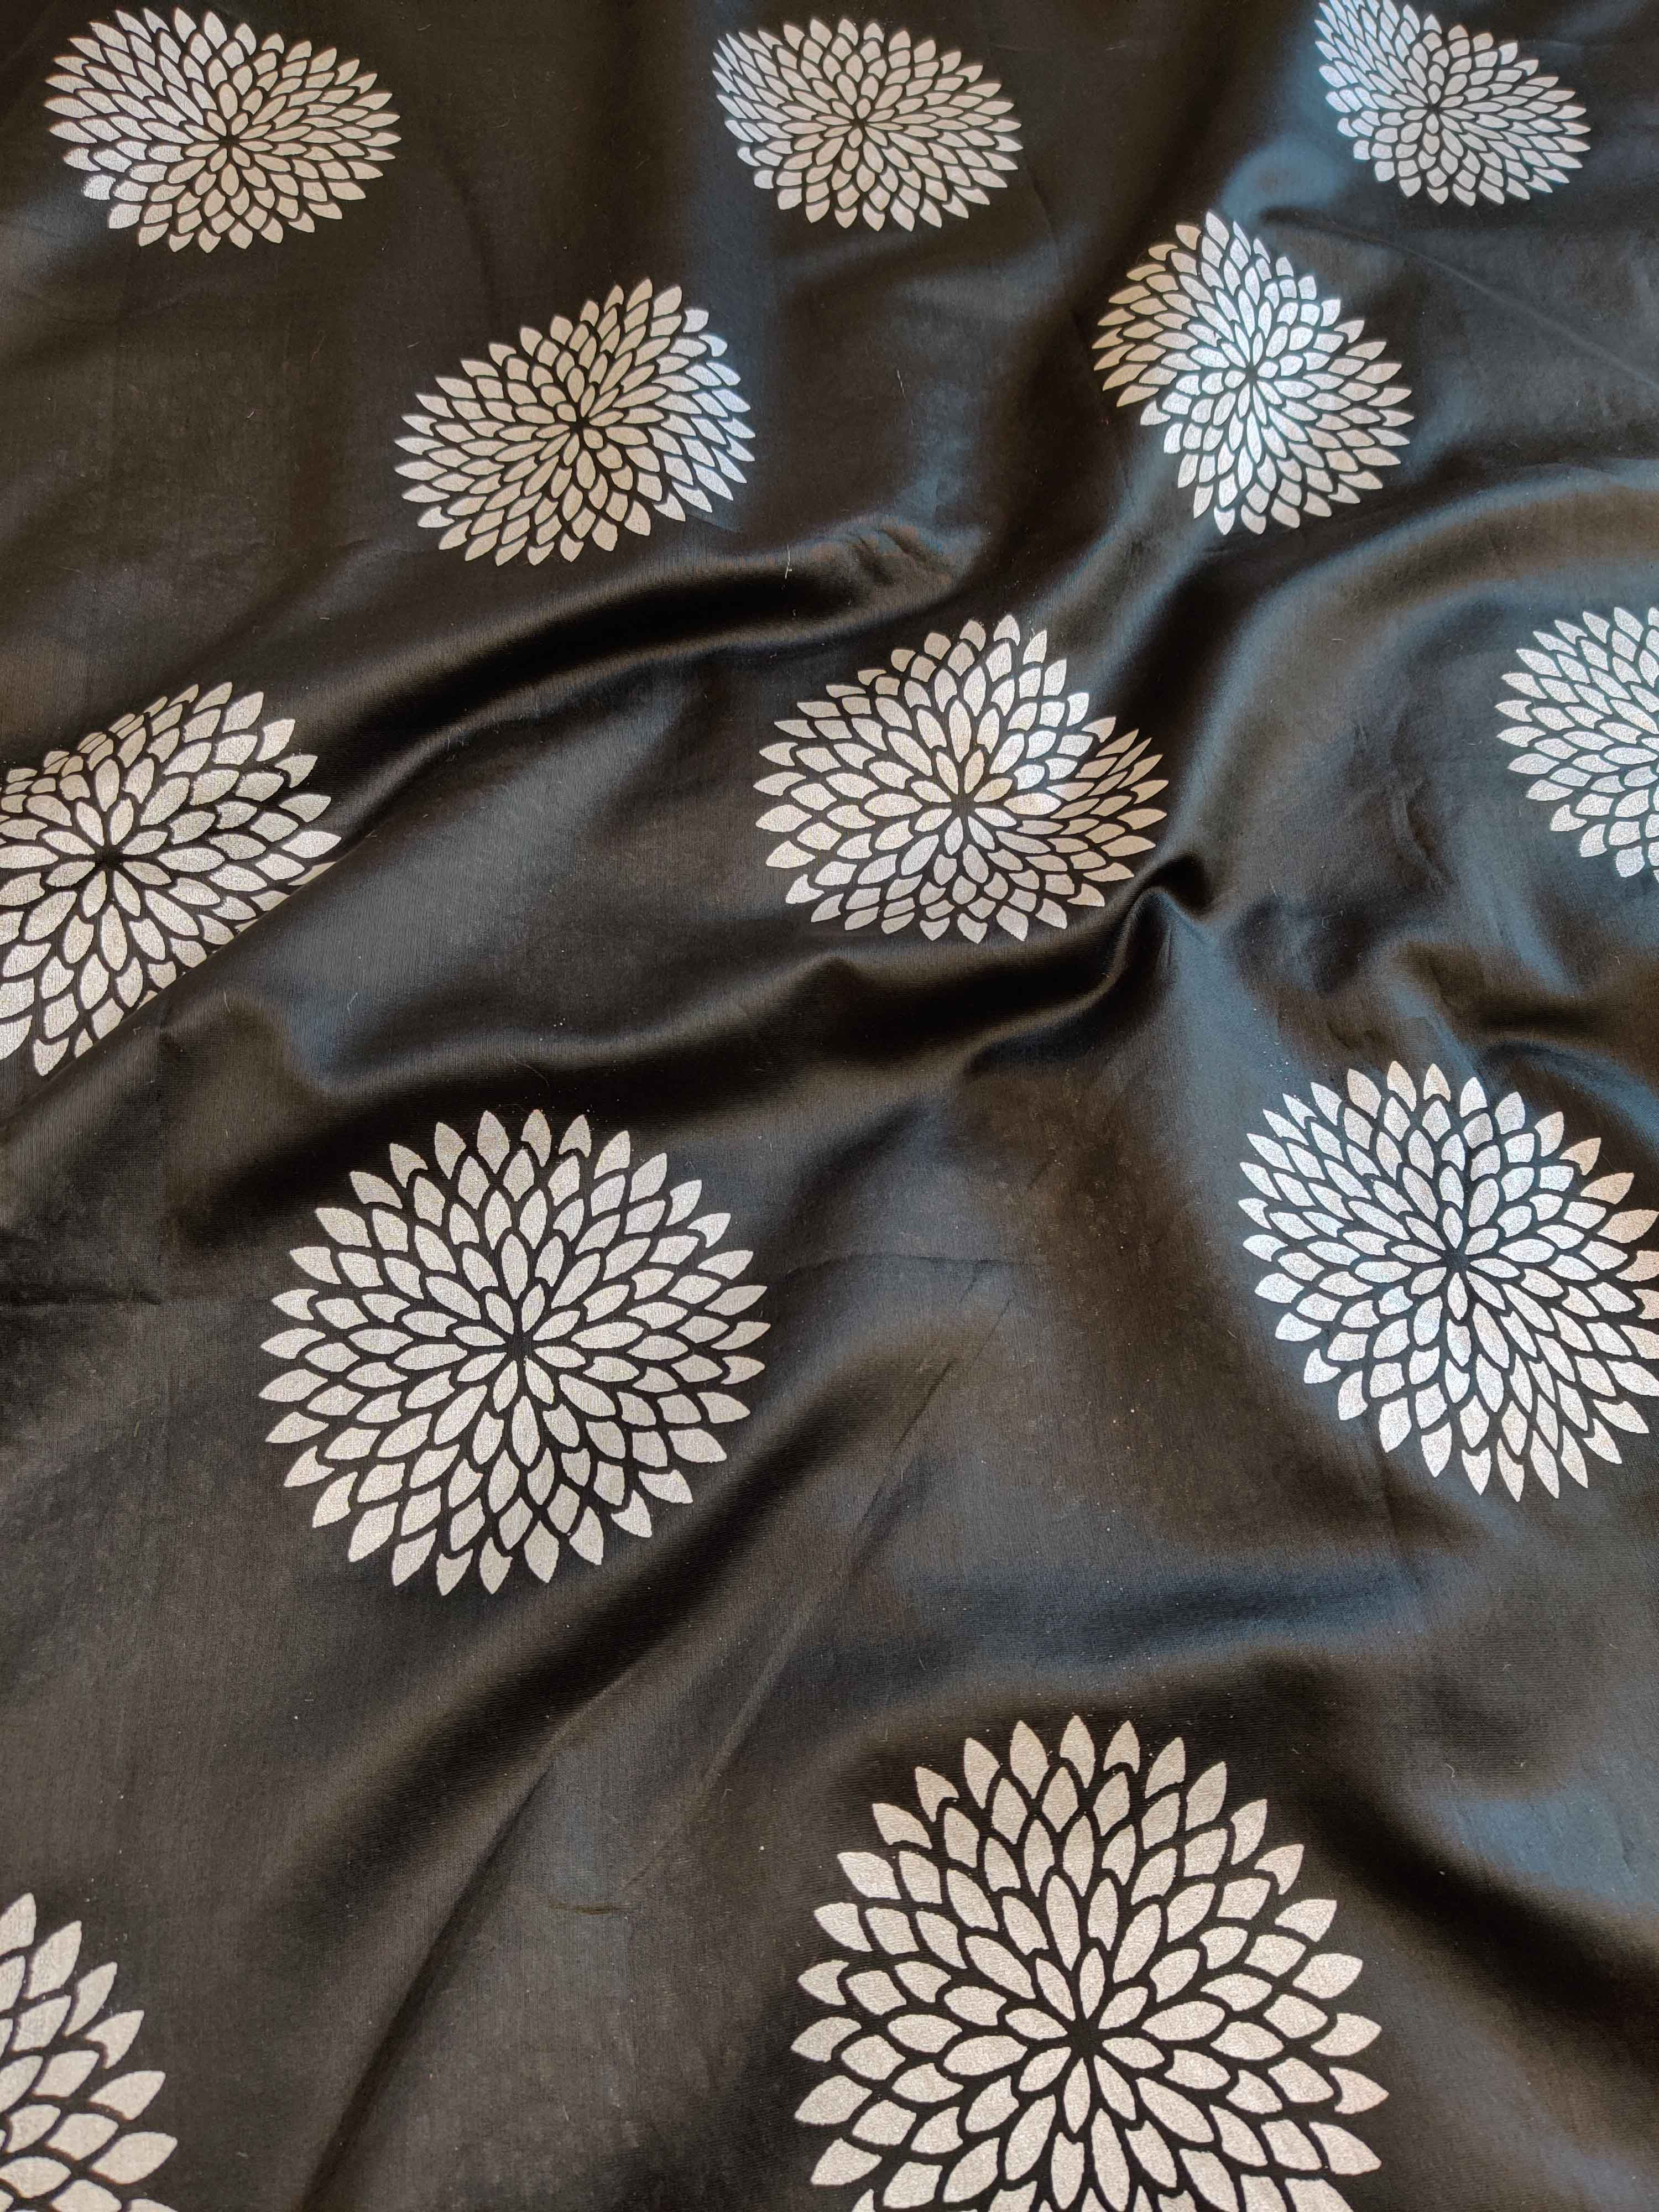 Banarasee Chanderi Salwar Kameez Silver Buta Fabric With Silver Dupatta-Black